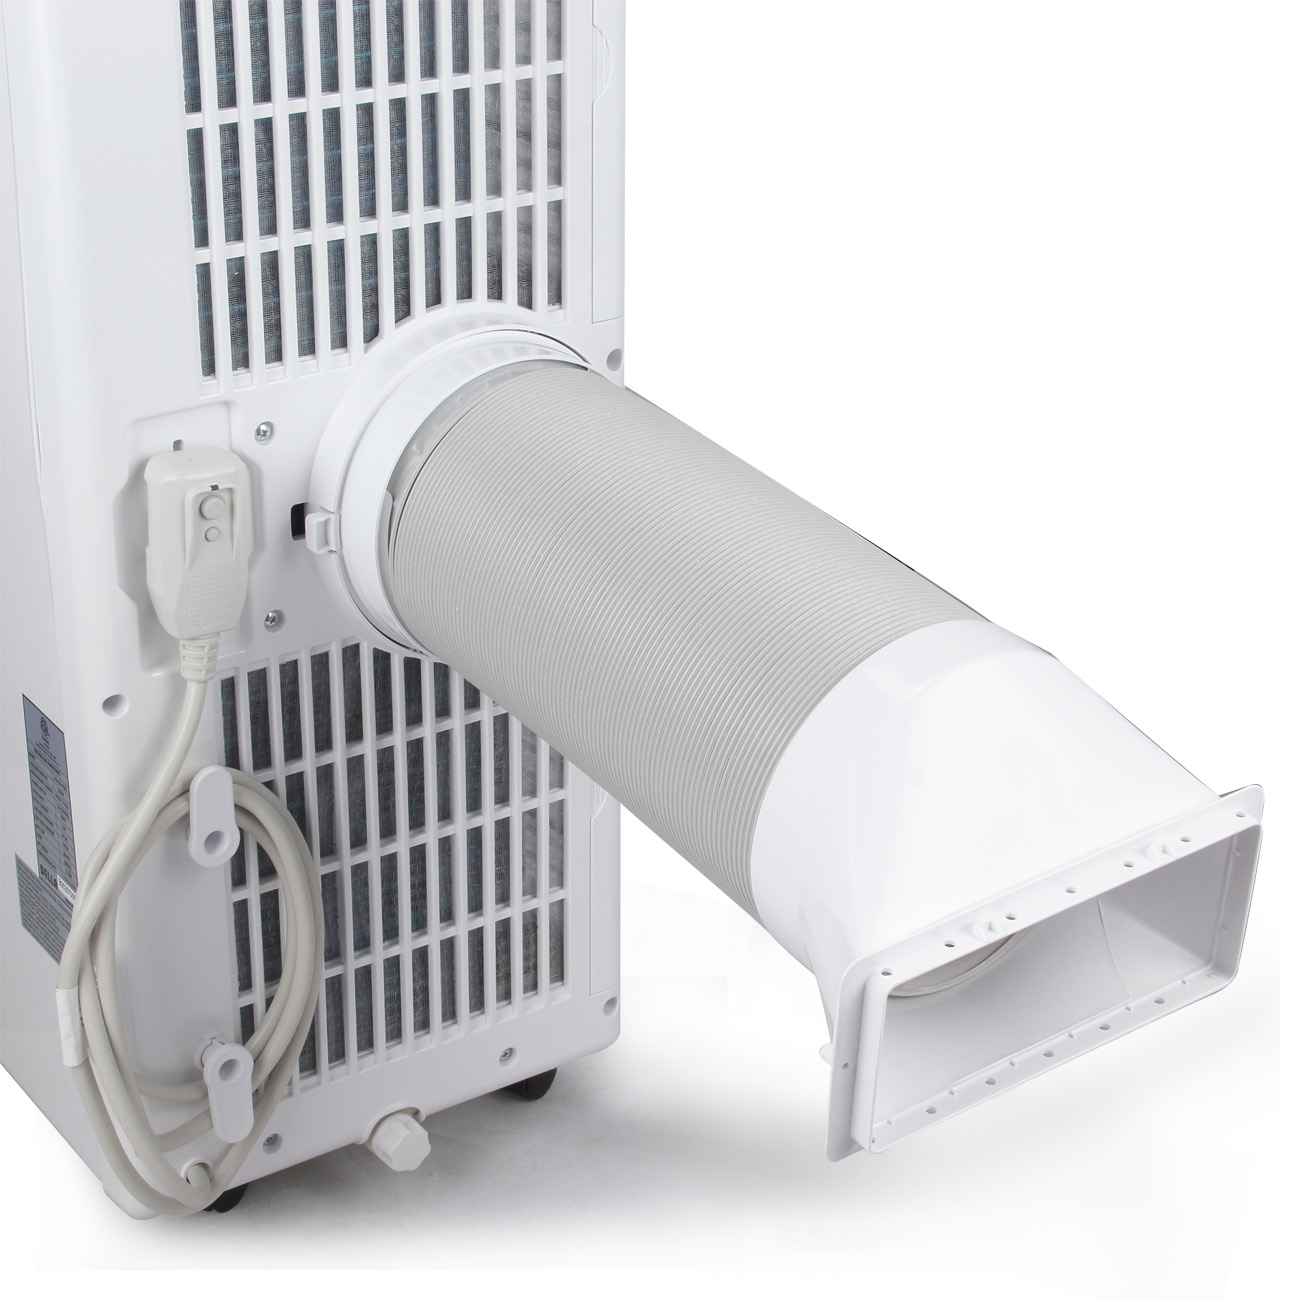 #515961 8 000 BTU Portable Air Conditioner And Dehumidifier  2017 13612 Portable Dehumidifier Air Conditioner photo with 1300x1300 px on helpvideos.info - Air Conditioners, Air Coolers and more